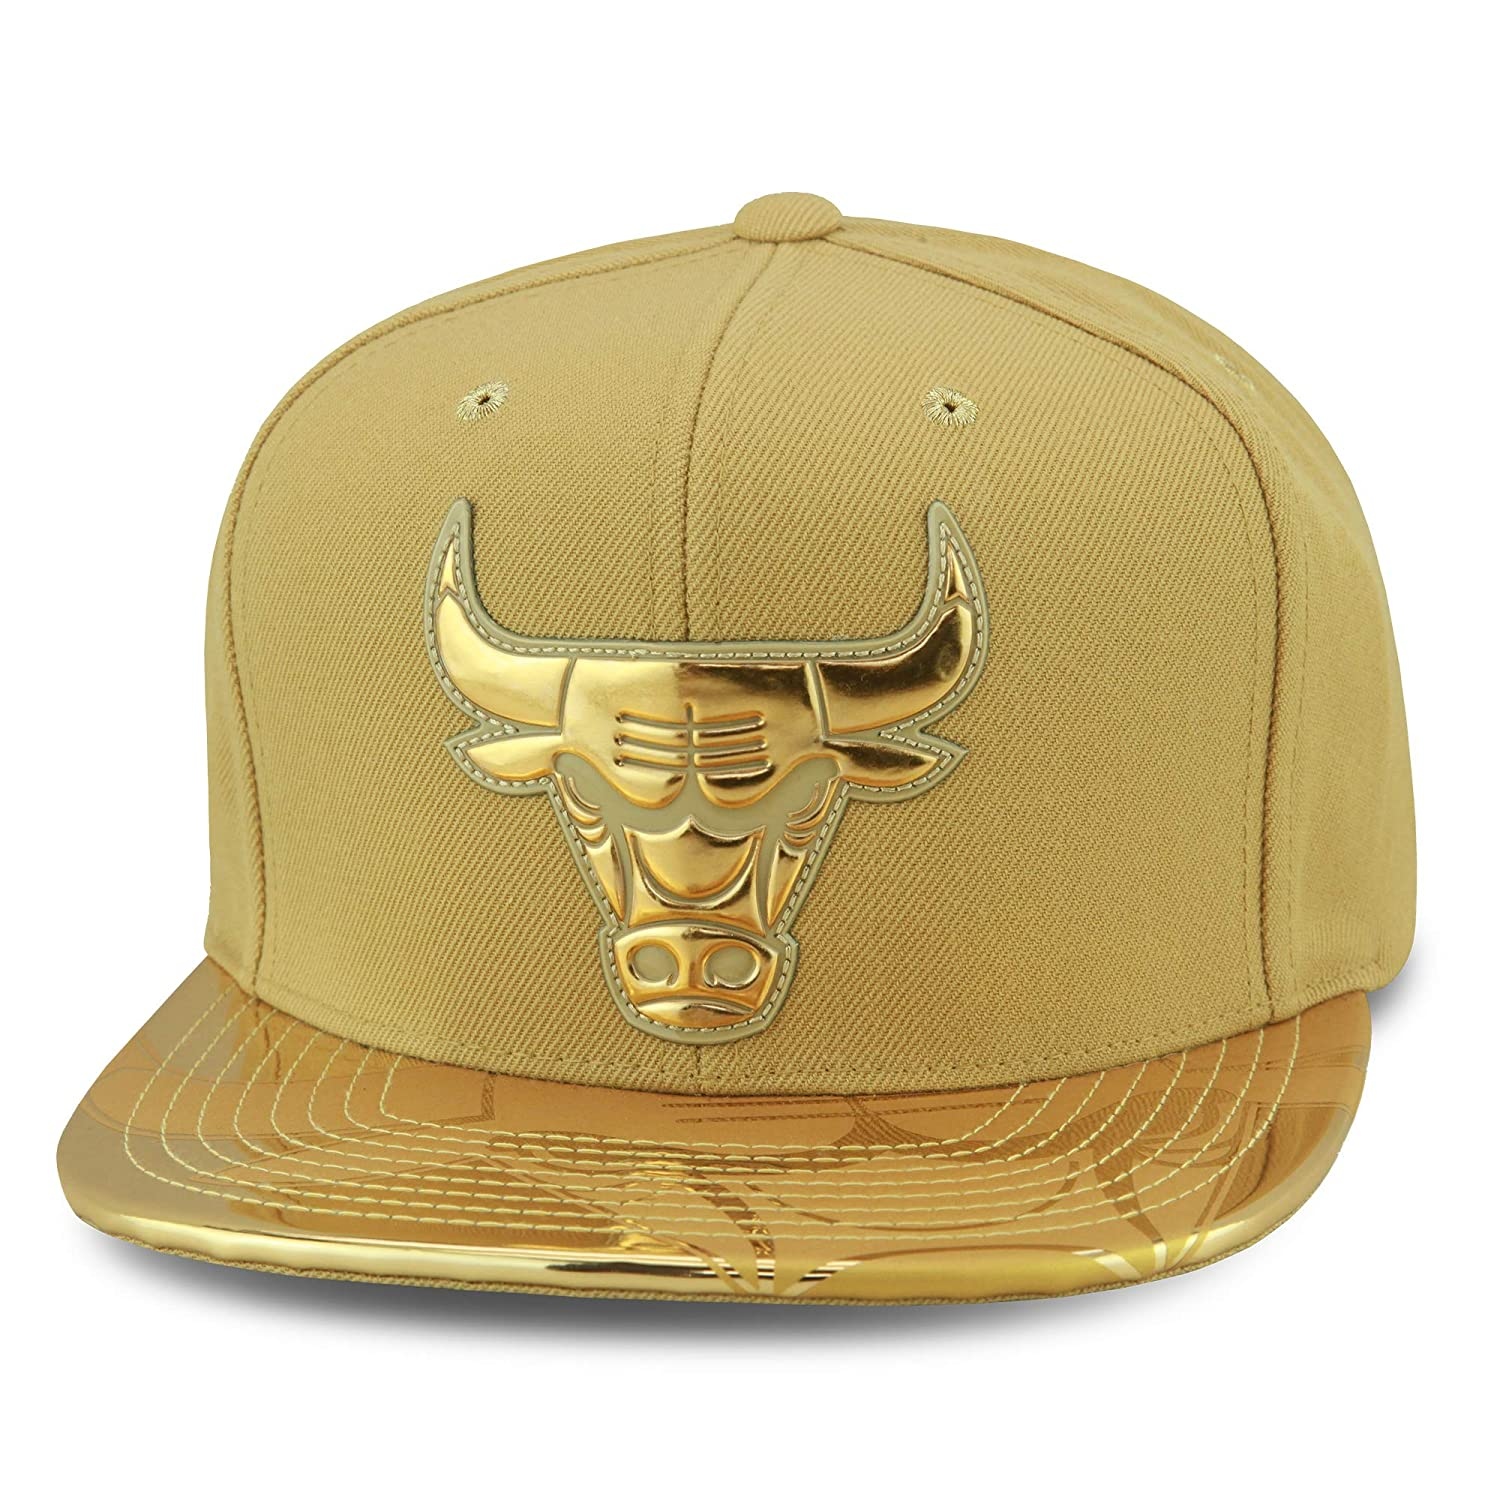 a876da59 Amazon.com: Mitchell & Ness (Premium Design) Chicago Bulls Snapback ...